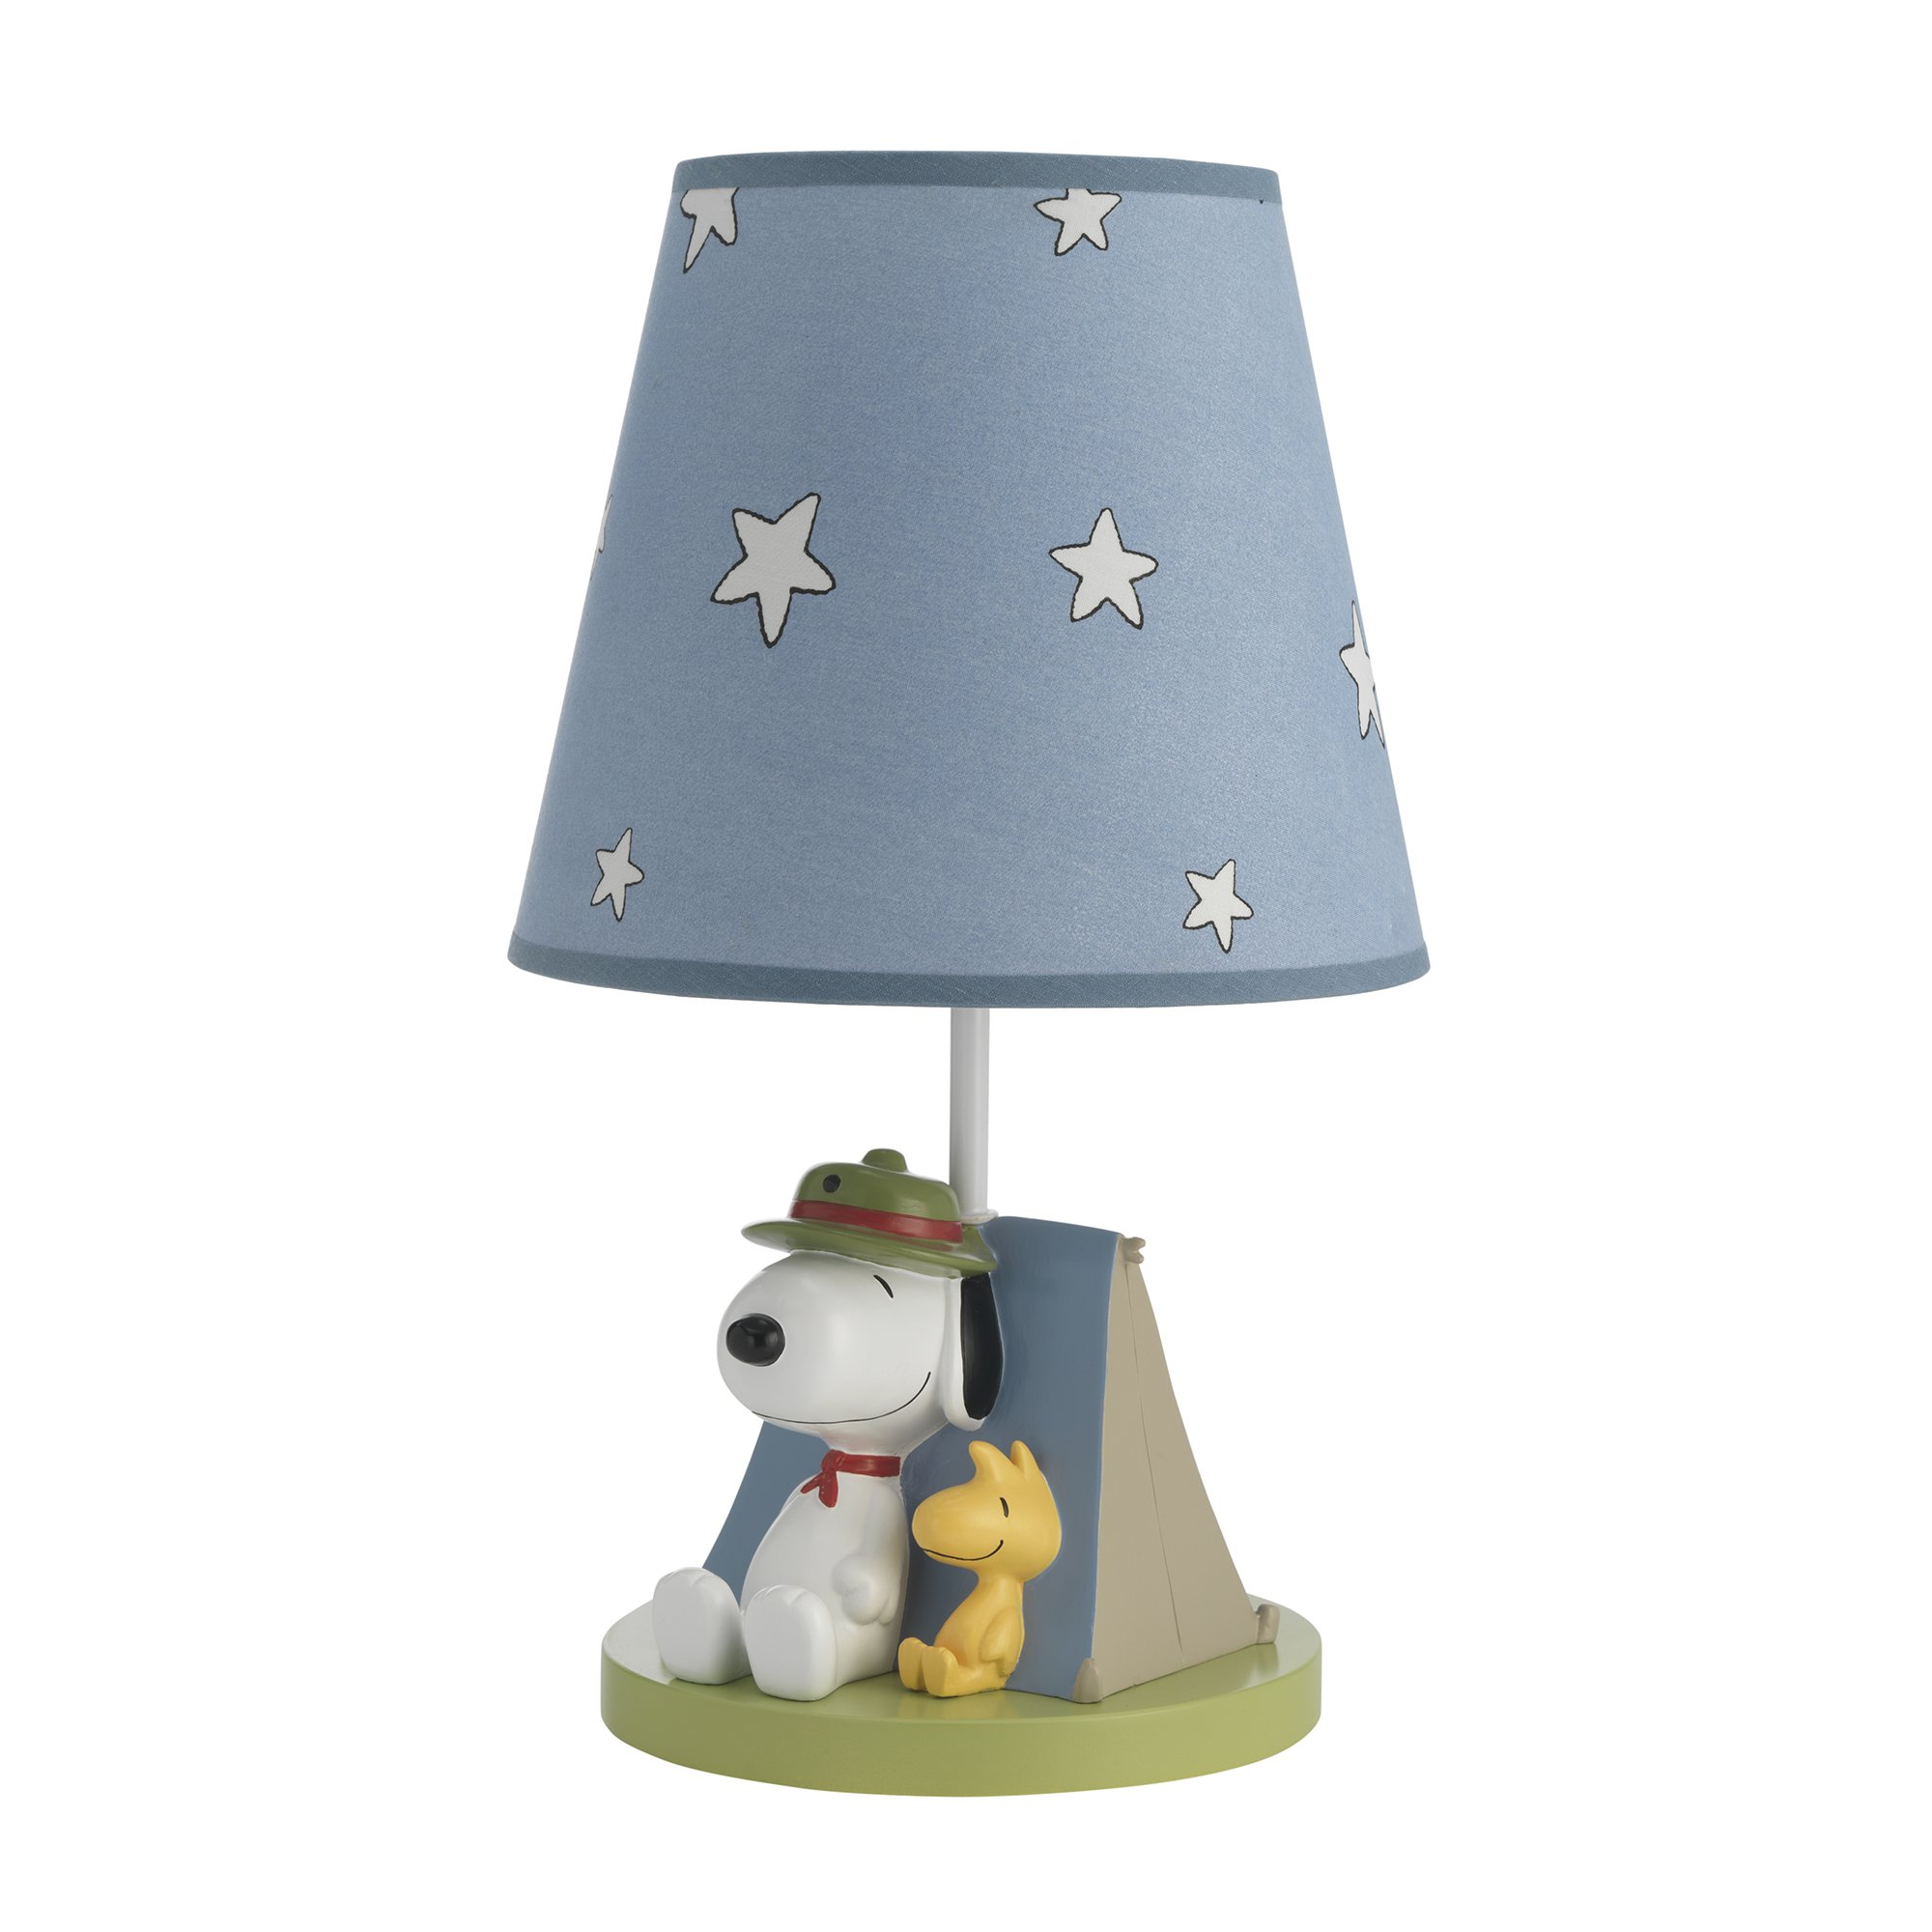 Lambs & Ivy Snoopy's Campout Lamp with Shade & Bulb Blue, Beige, Green by Lambs & Ivy